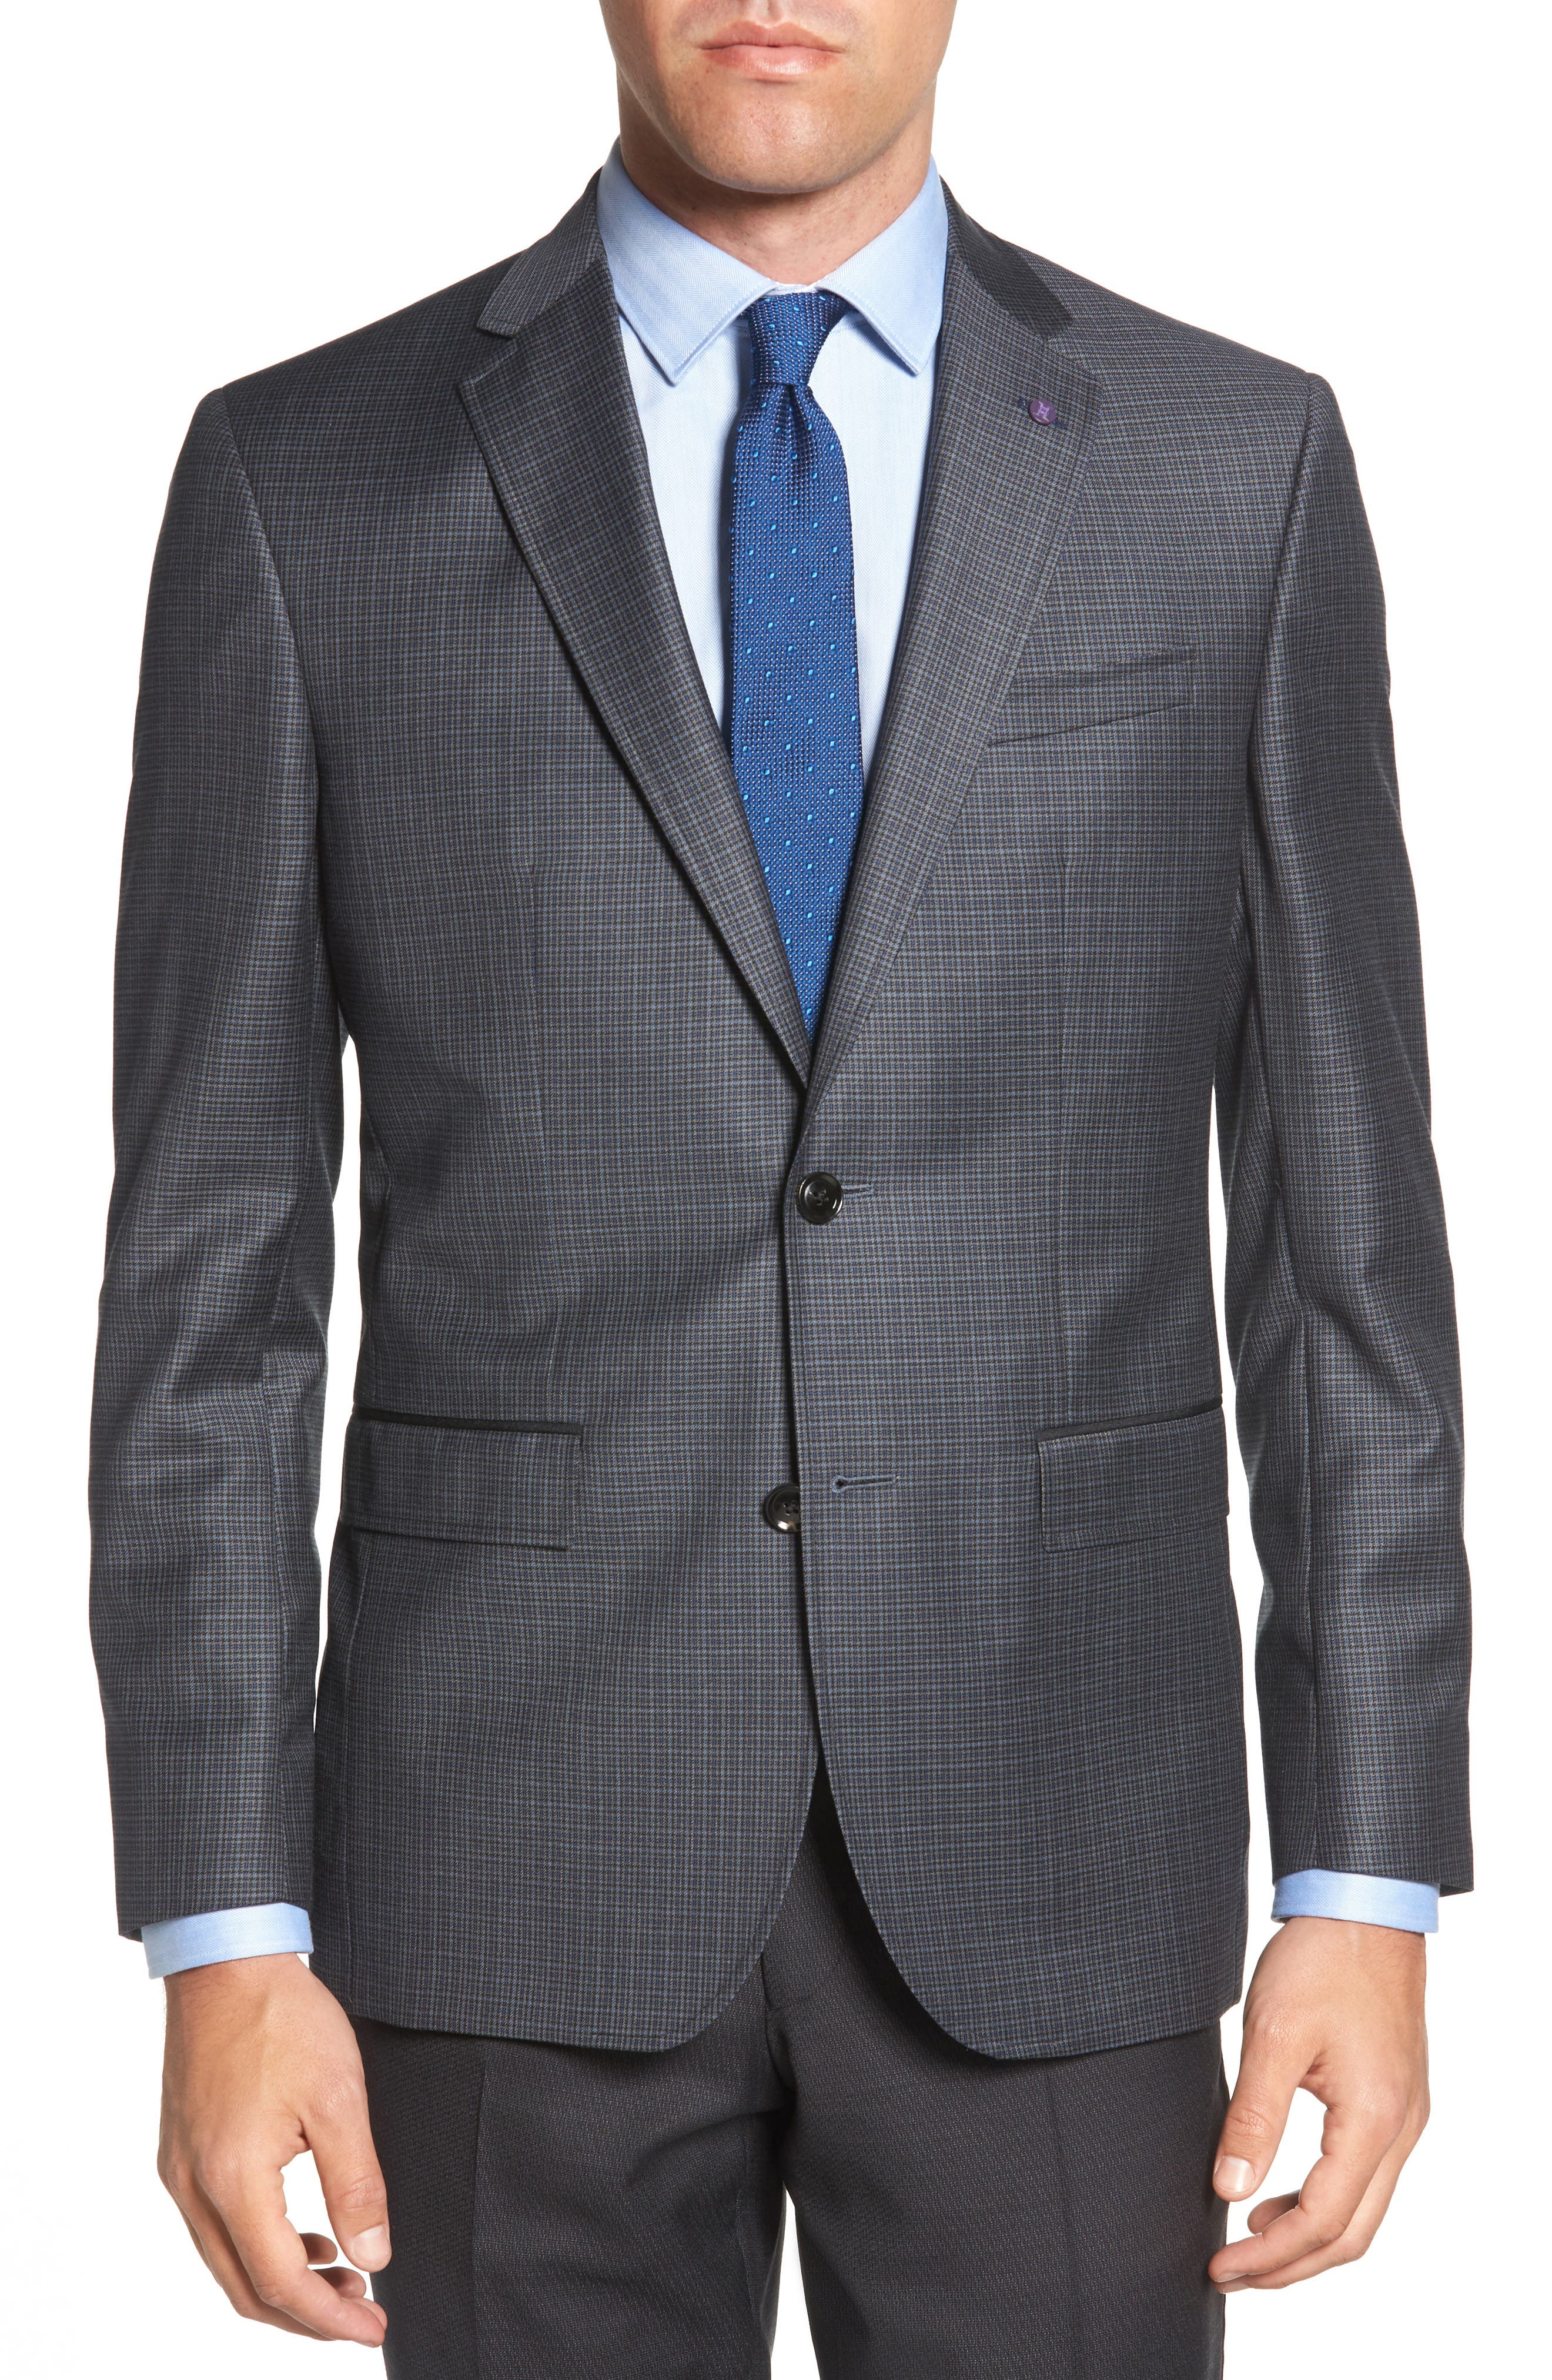 Jed Trim Fit Microcheck Wool Sport Coat,                             Main thumbnail 1, color,                             020